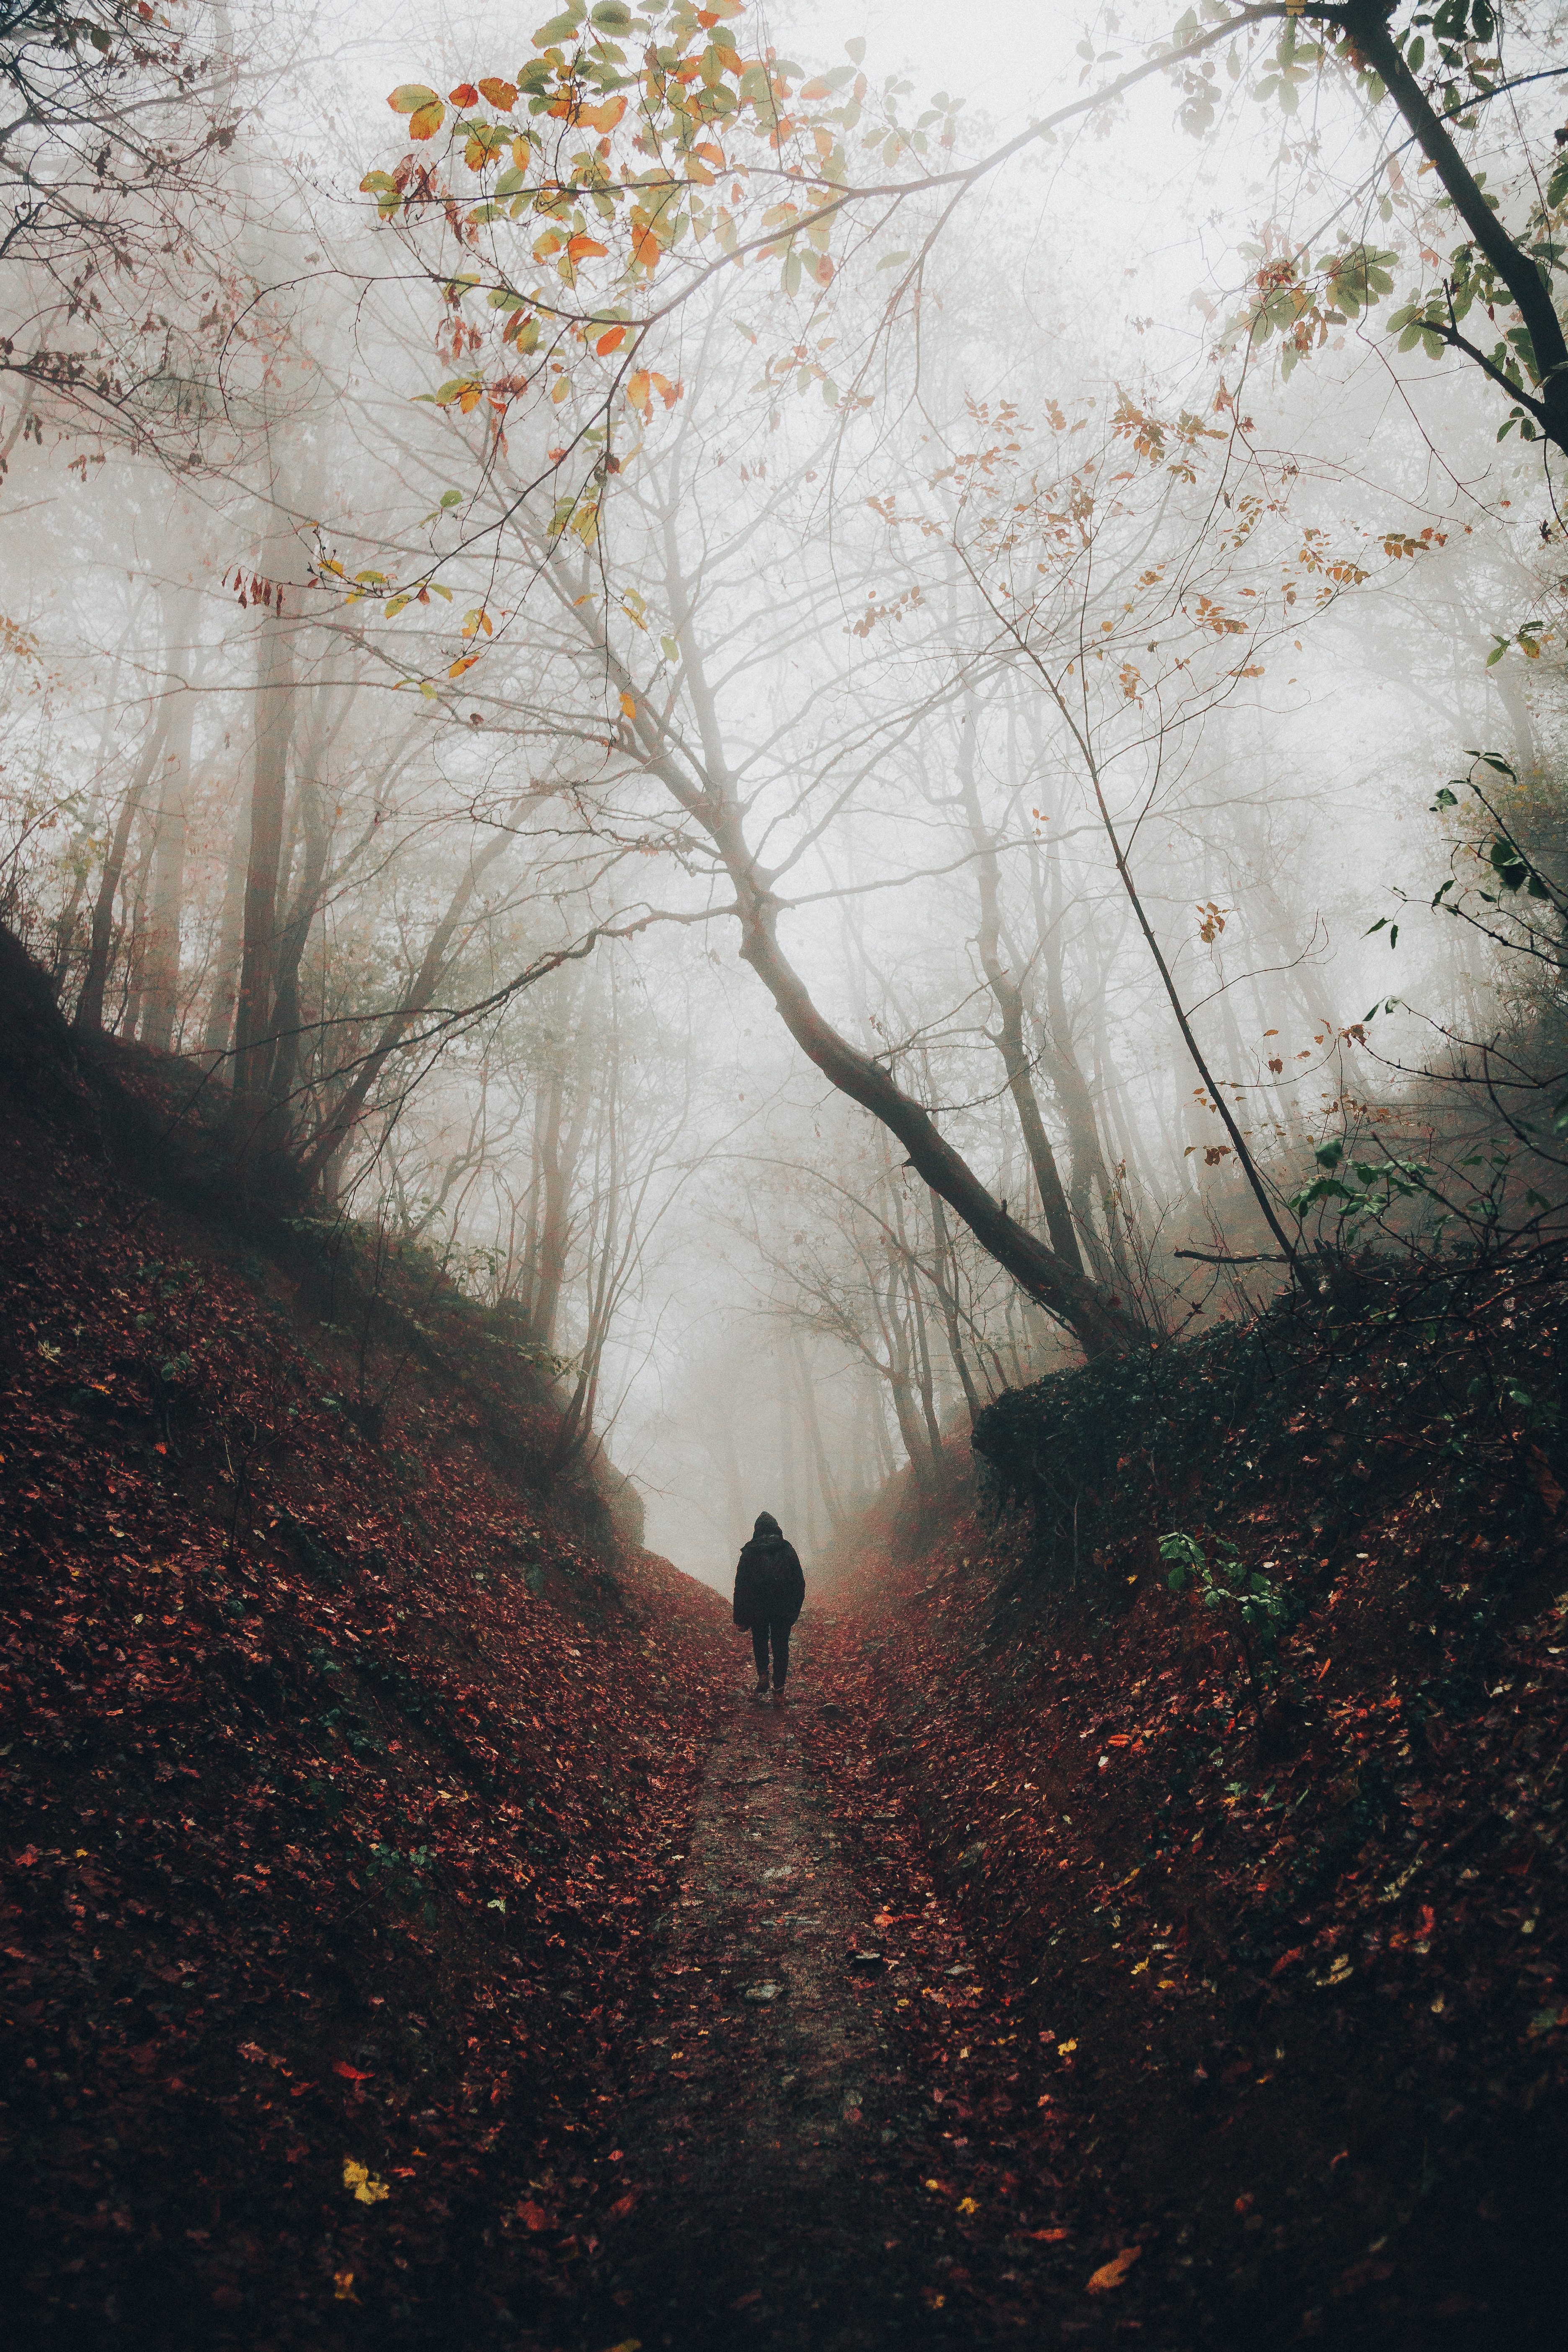 67920 Screensavers and Wallpapers Stroll for phone. Download Nature, Silhouette, Privacy, Seclusion, Forest, Fog, Stroll, Loneliness pictures for free